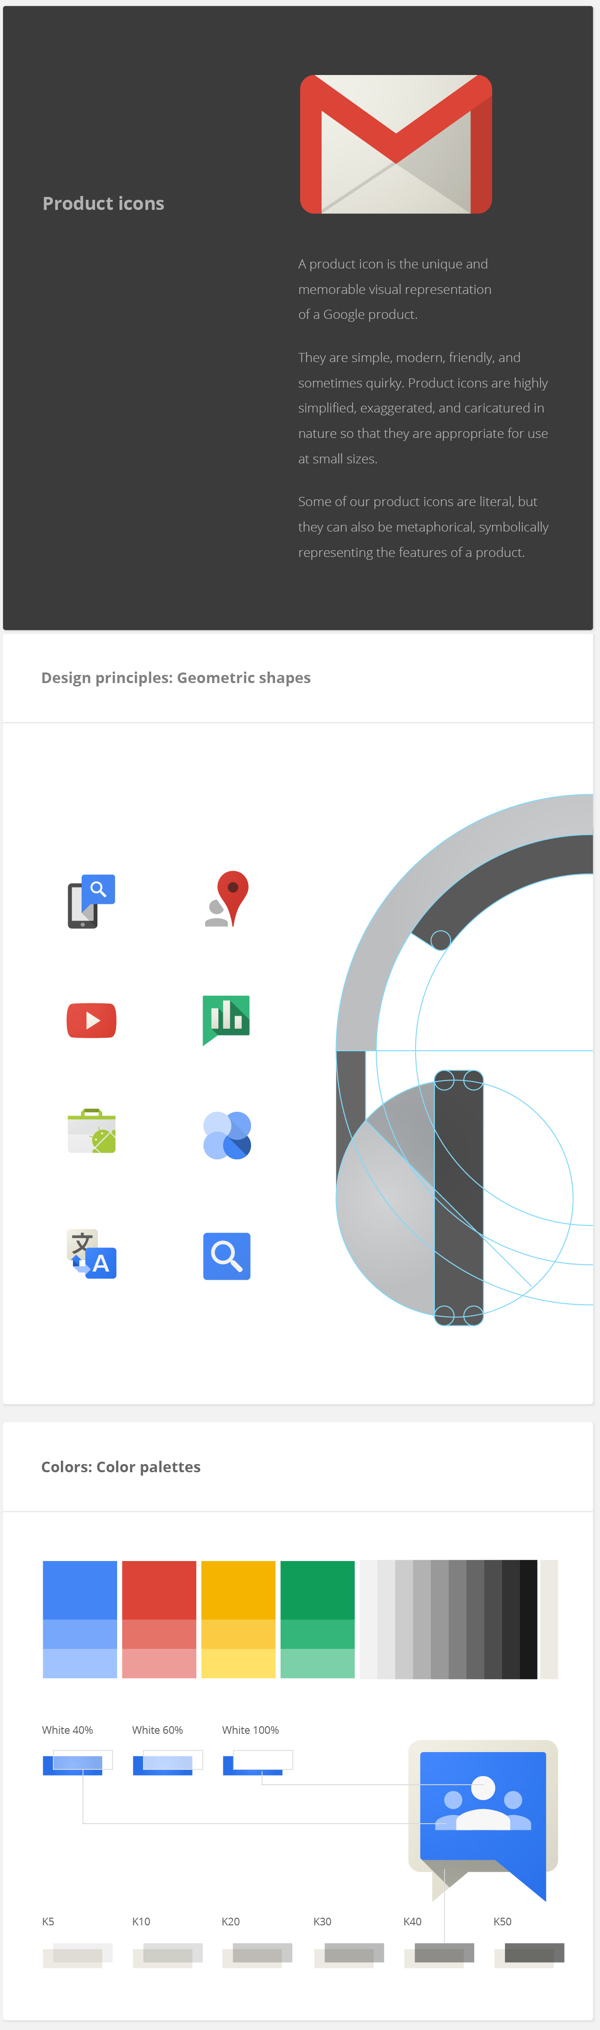 Google Visual Assets Guidelines | Product Icons